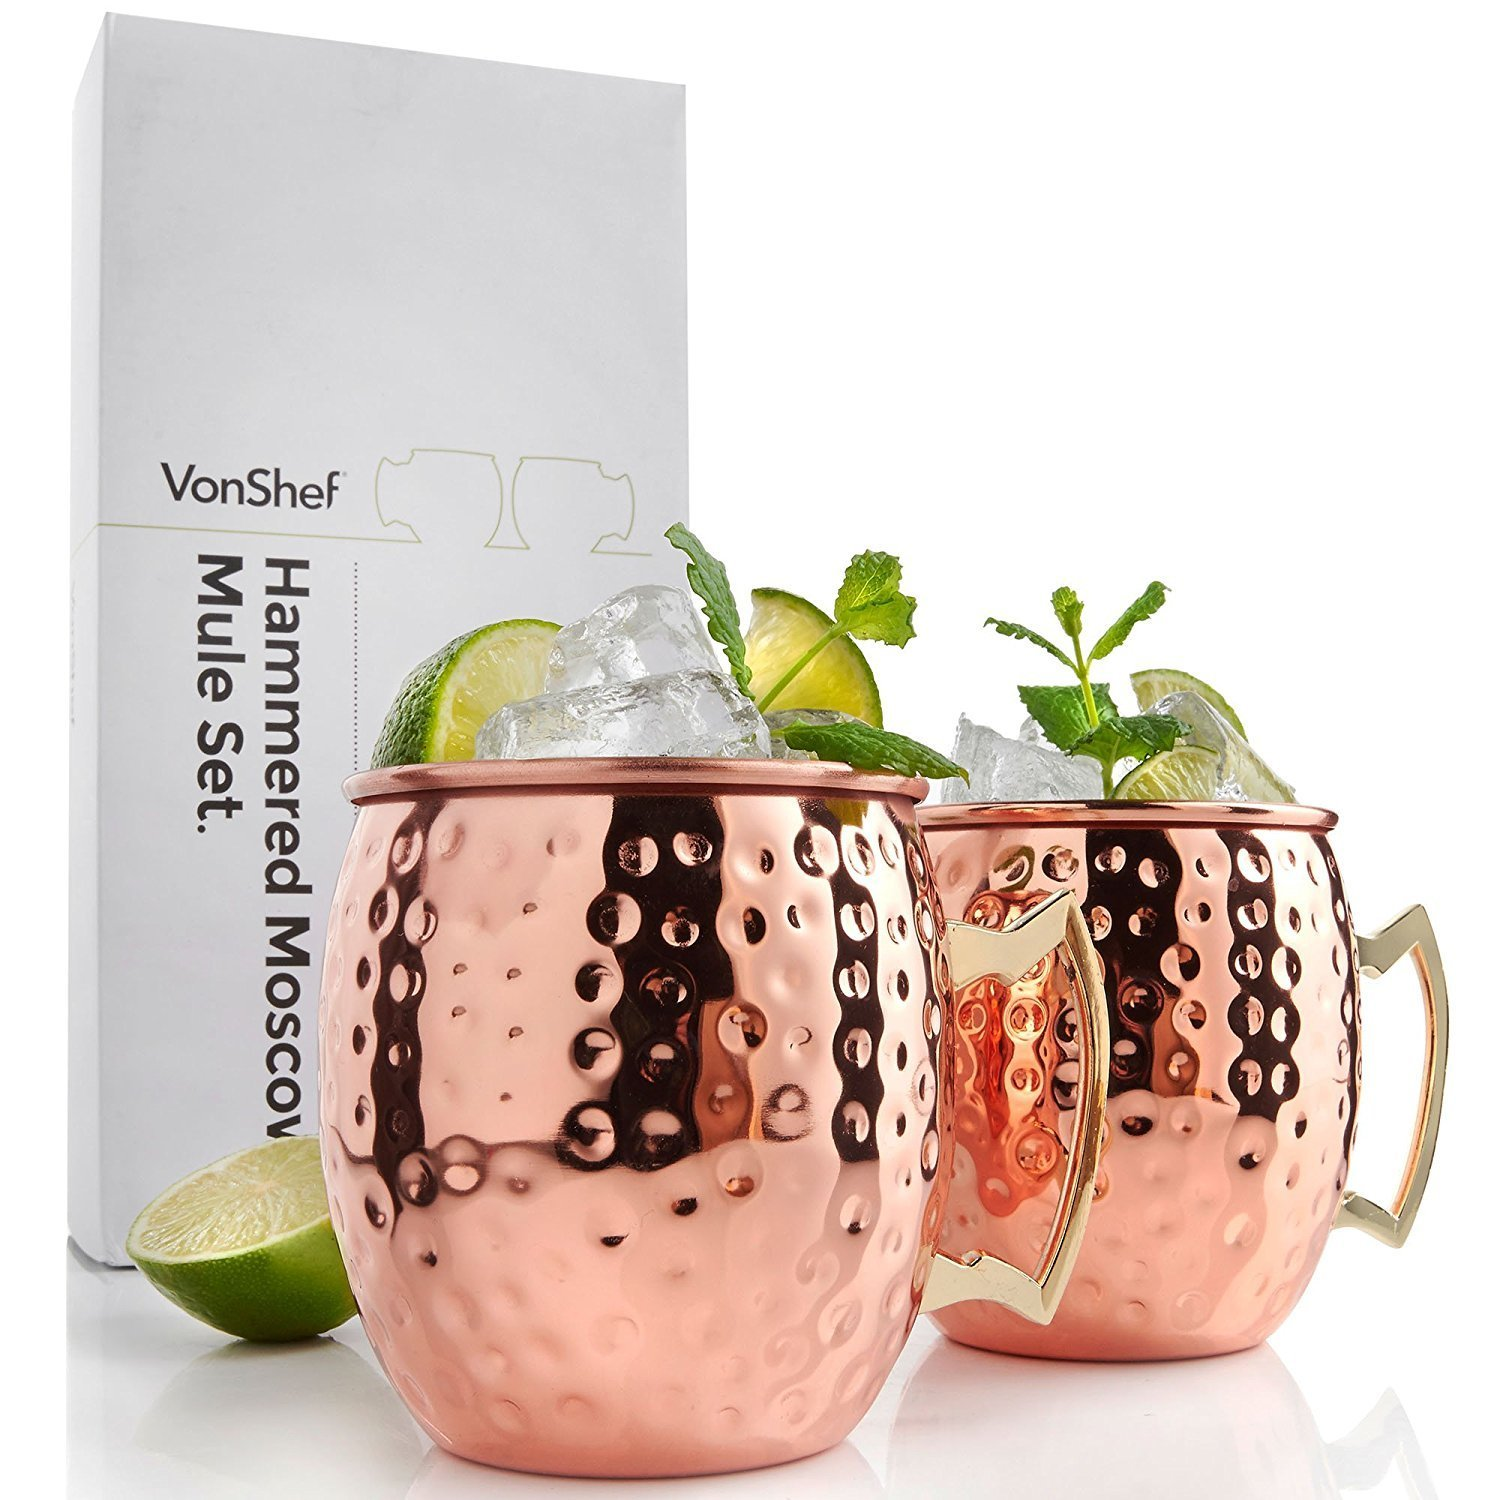 VonShef Moscow Mule Mugs Set, Copper Finish, Hammered Effect Moscow Mule Cups, Barrel Style Mug, Set of 2